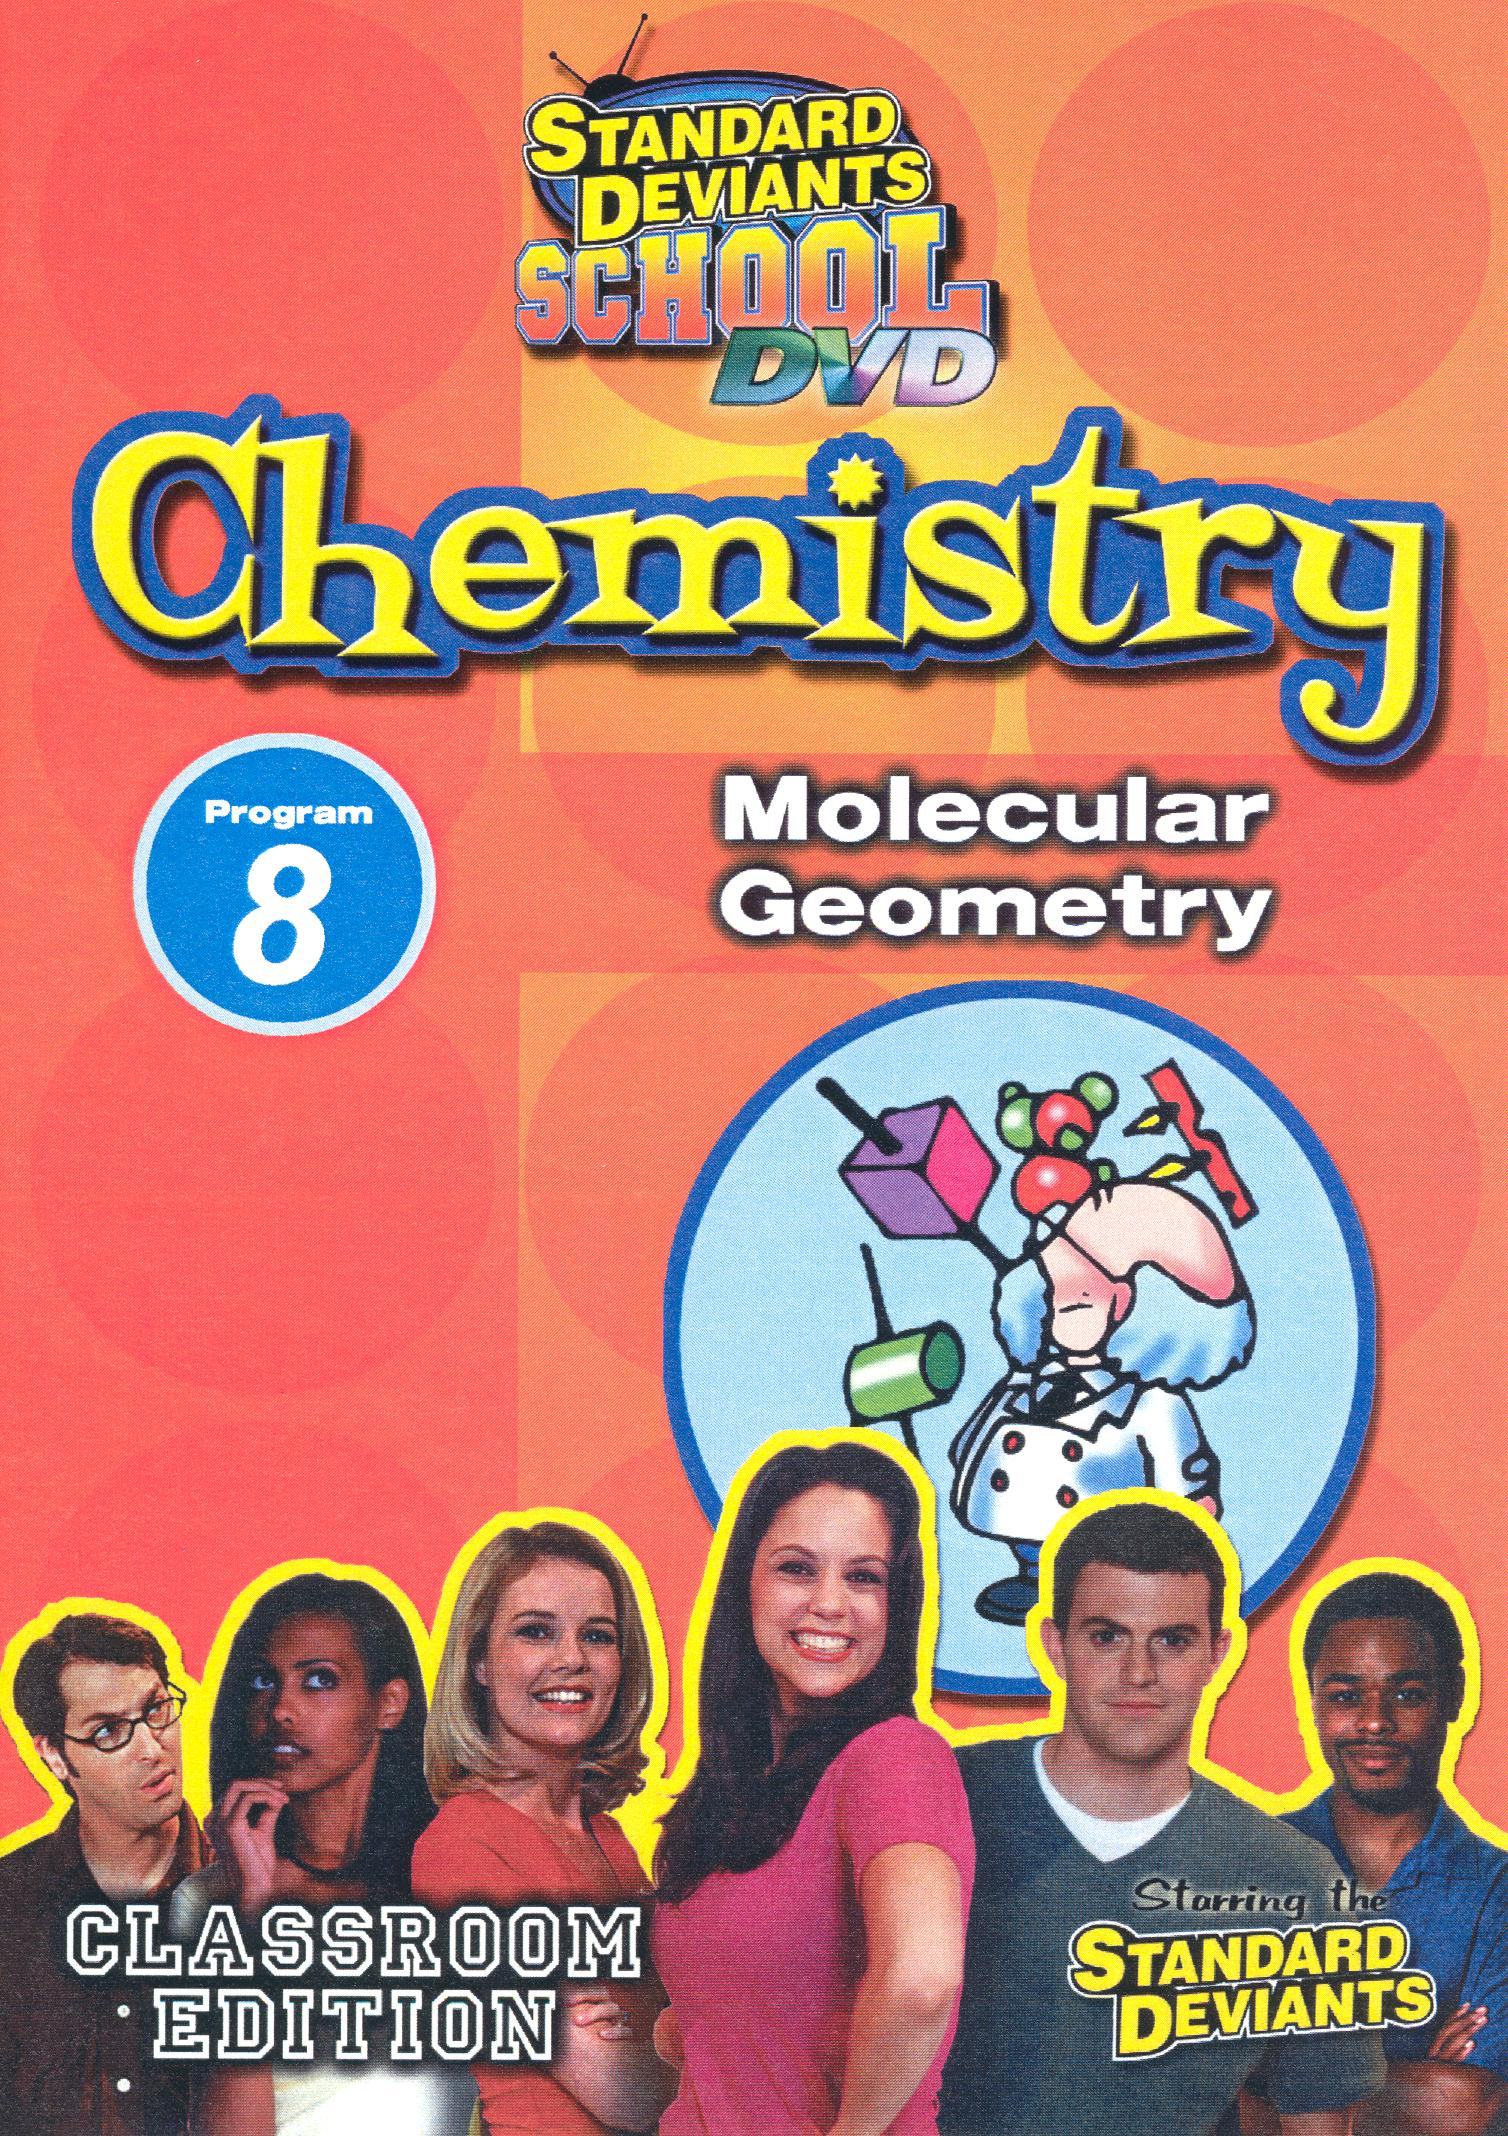 Standard Deviants School: Chemistry, Program 8